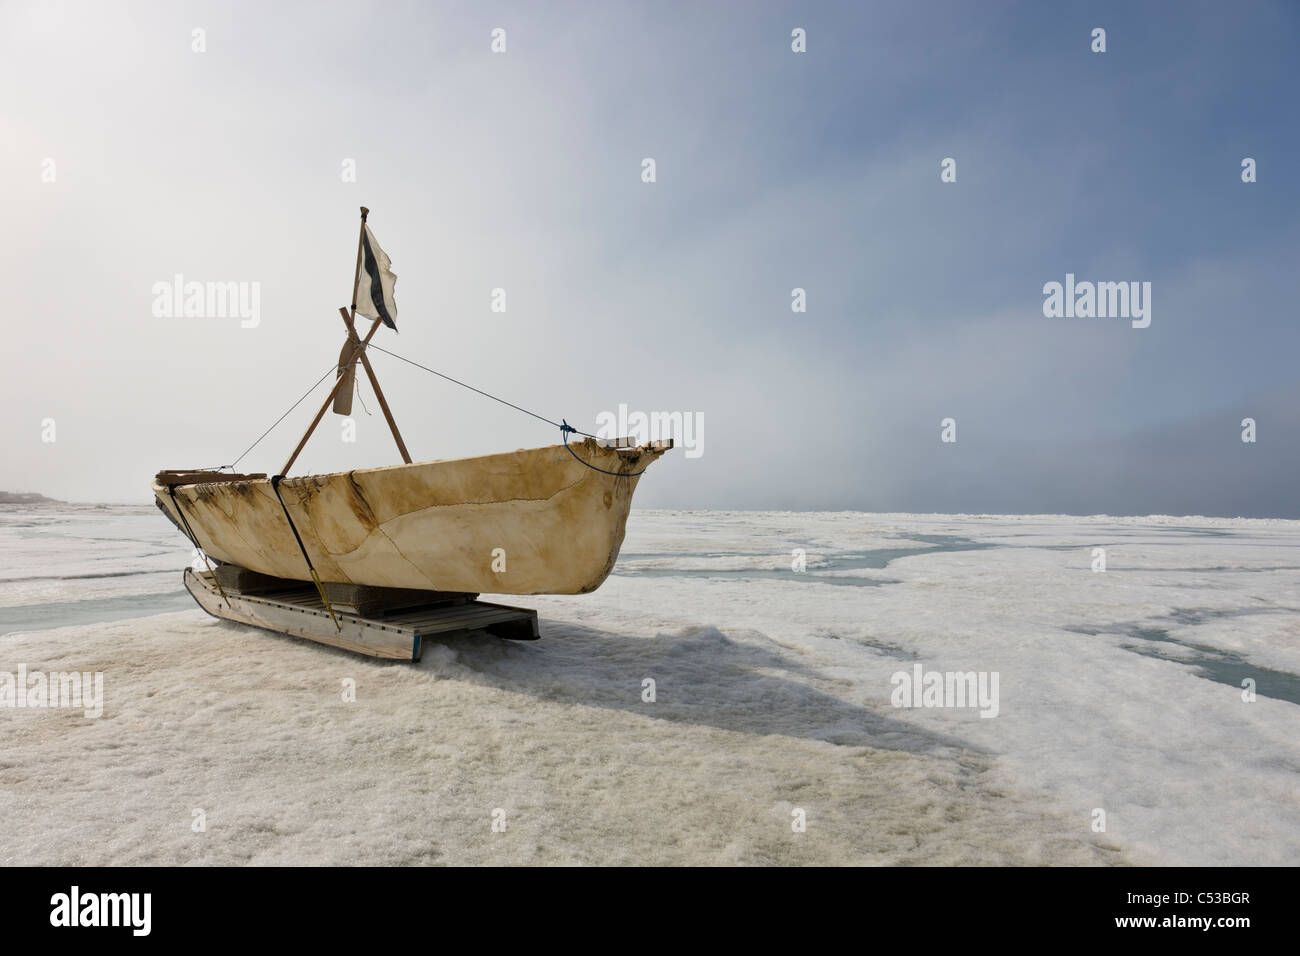 Inupiaq Eskimo Skin Boat  made from bearded seal skin resting on the shore ice of the Chukchi Sea off shore of Barrow, - Stock Image